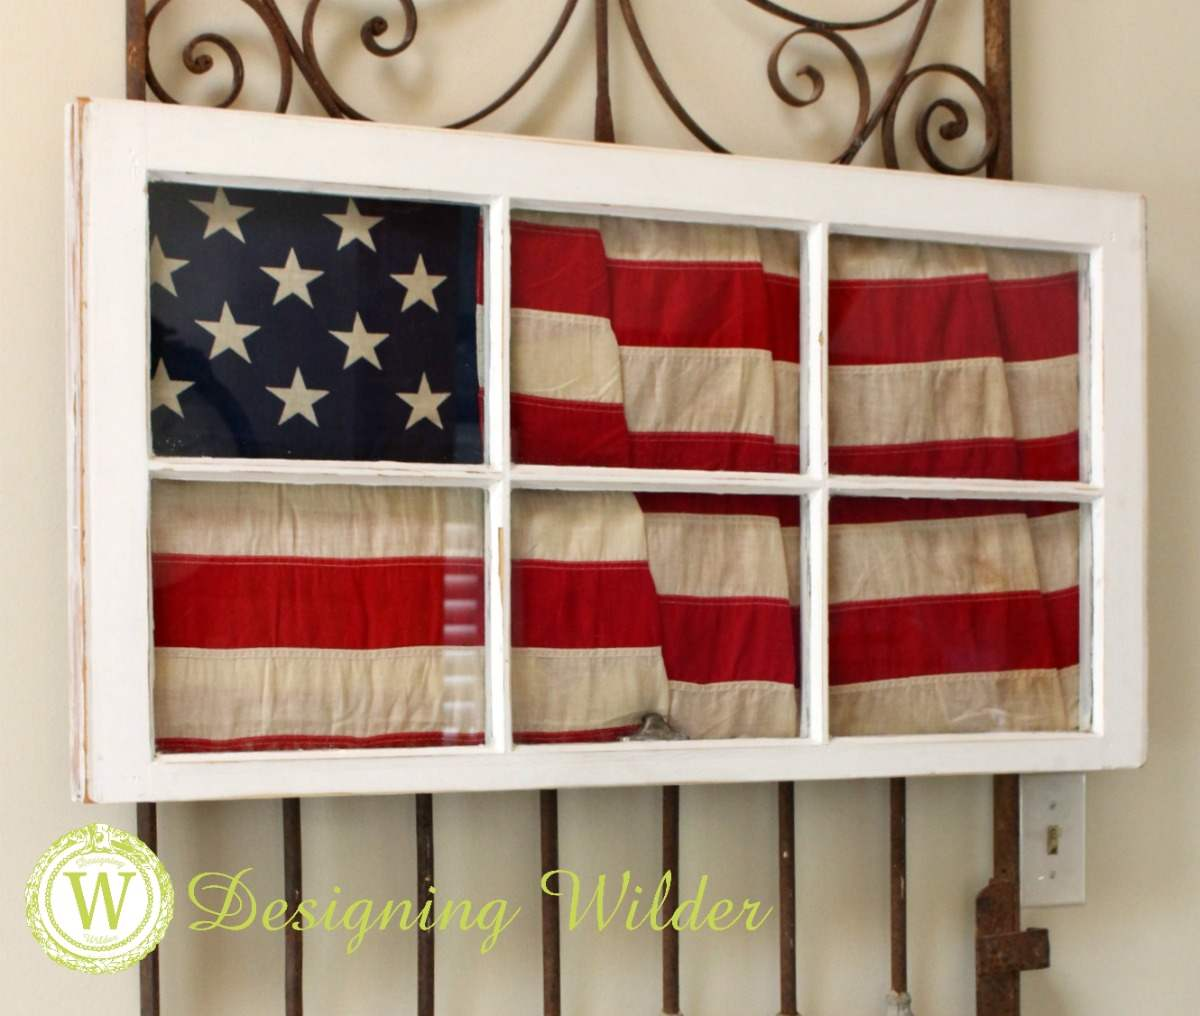 The Flag Decor Project is the perfect addition to summer decor that will look perfect from Memorial Day through Labor Day!